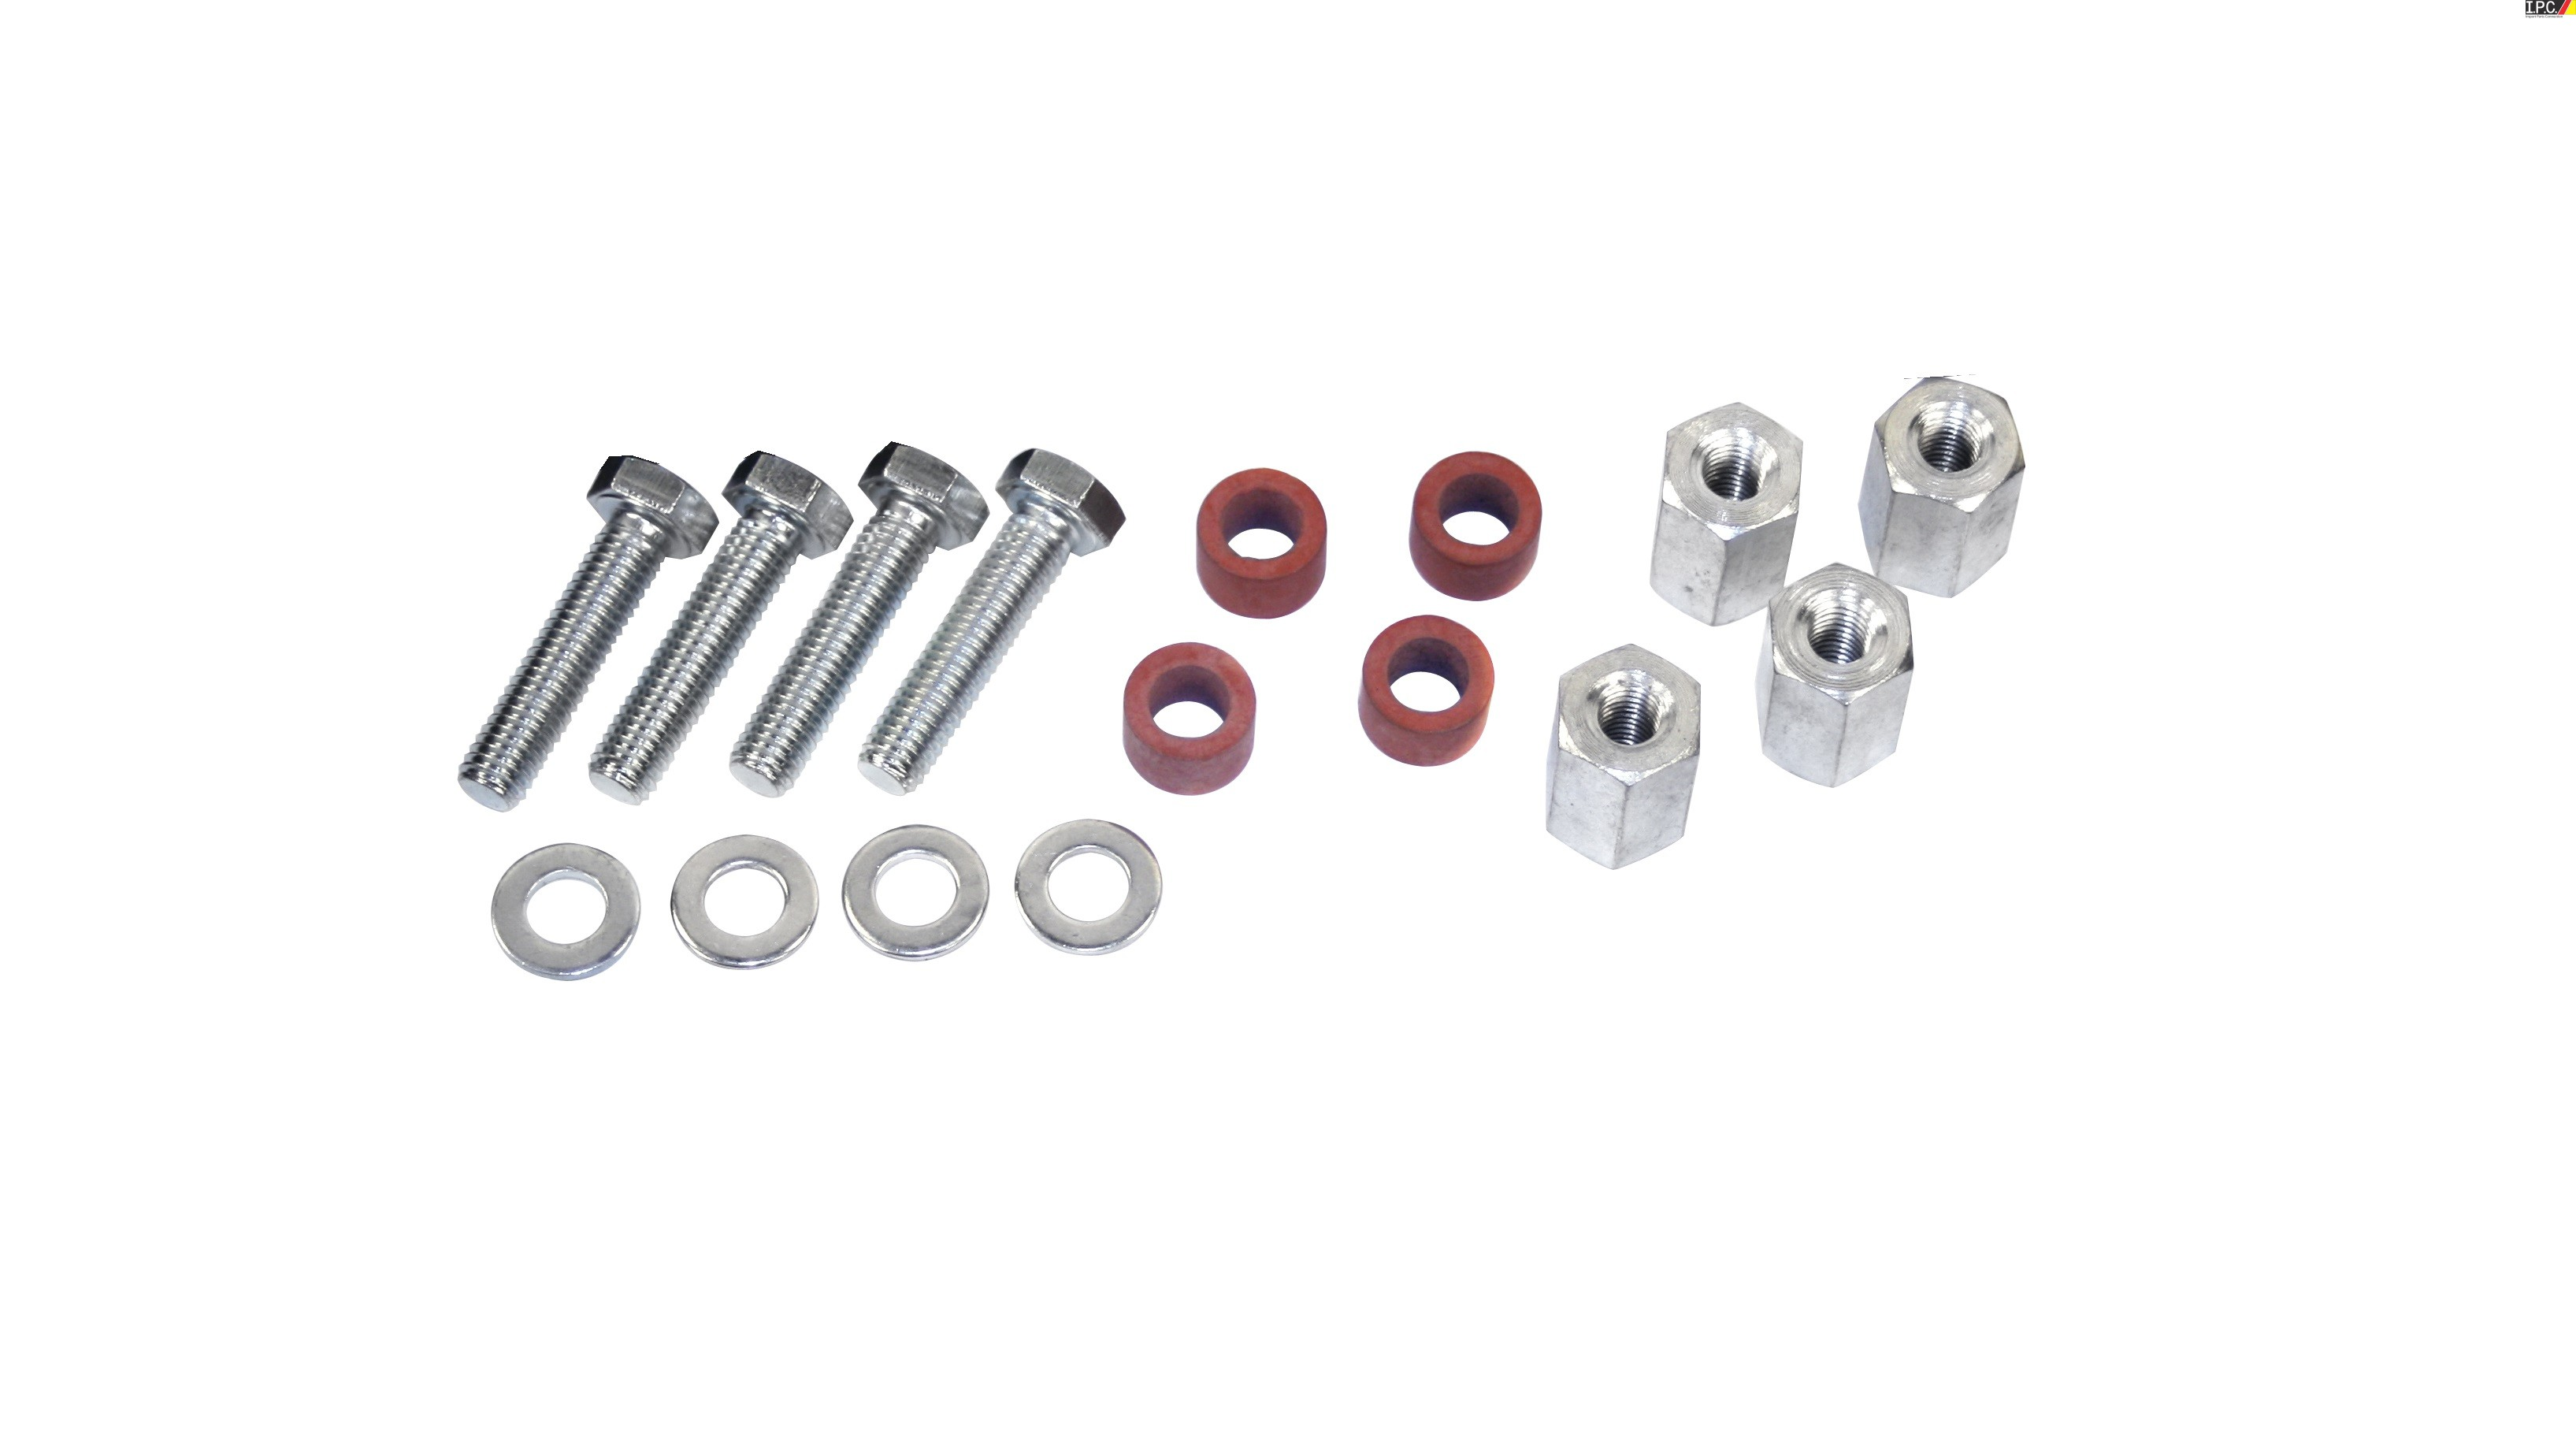 Replacement Hardware kit for AC101-8852. I.P.C. VW Parts